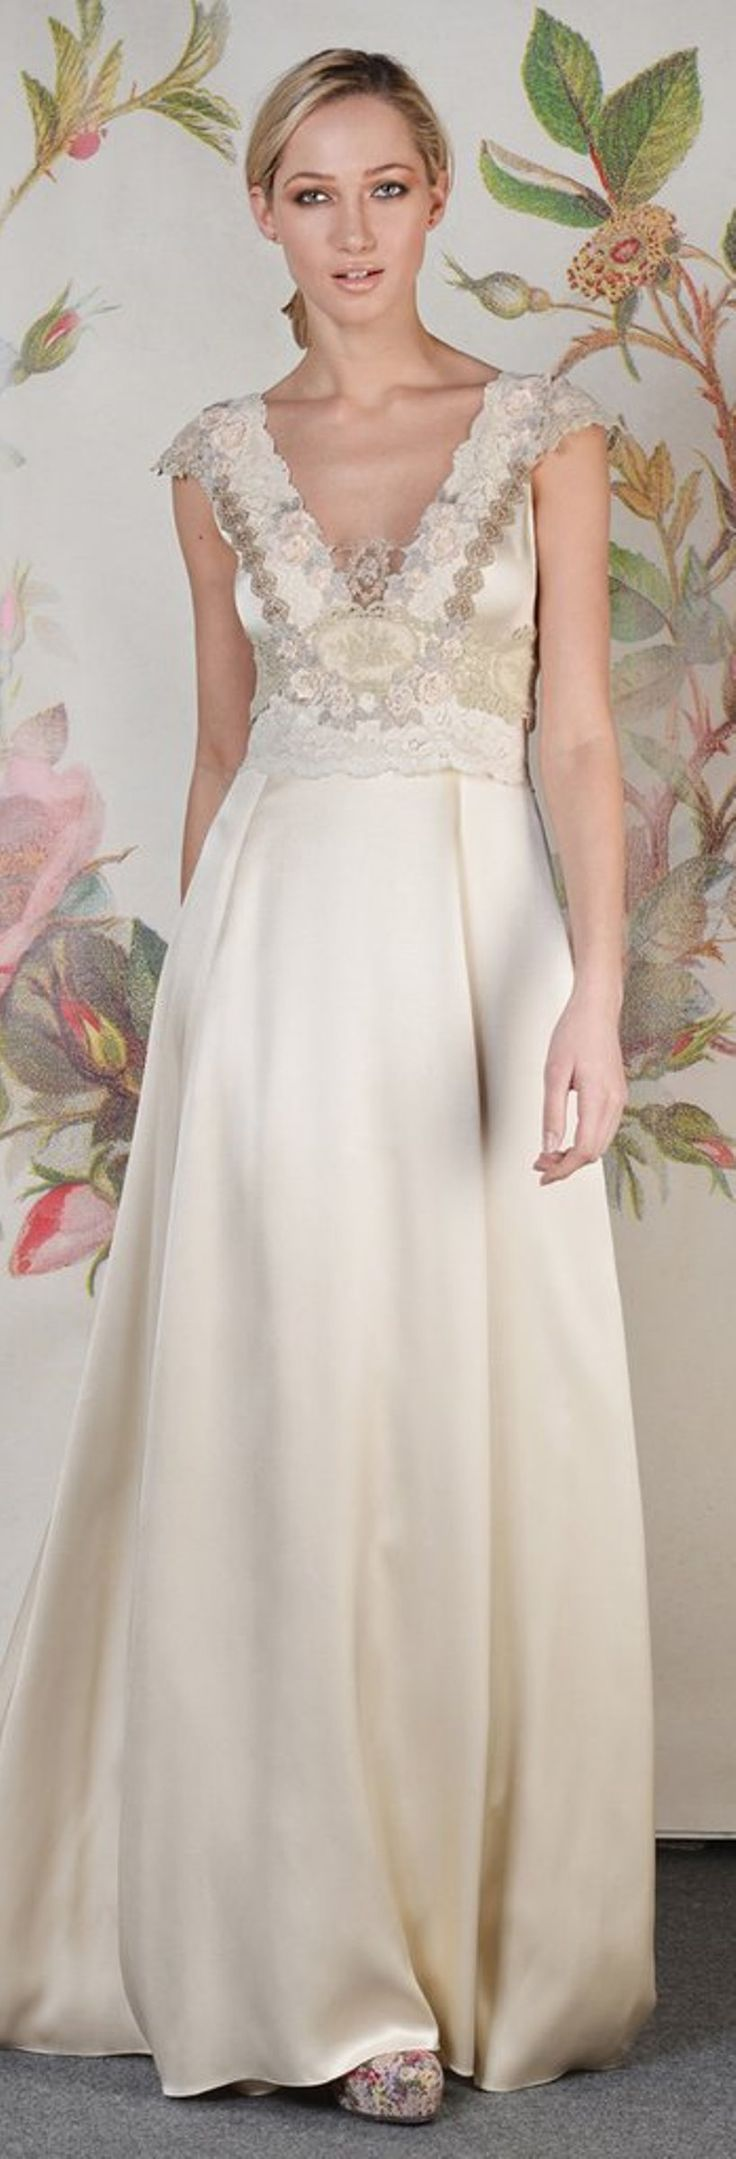 Abigail Couture Wedding Dress By Claire Pettibone SAMPLE SALE Available For Purchase Online Direct From The